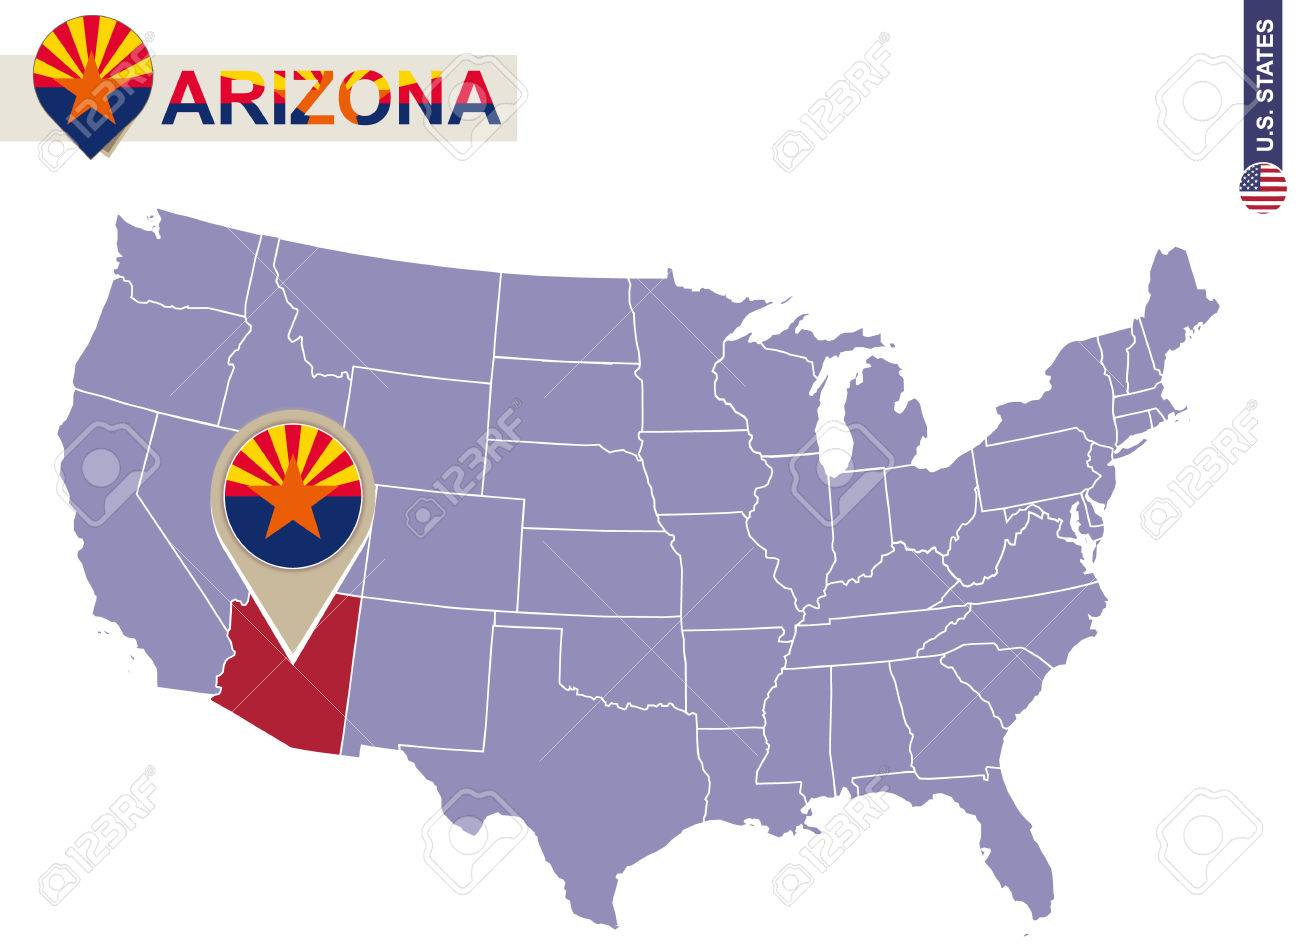 Arizona State On USA Map Arizona Flag And Map US States Royalty